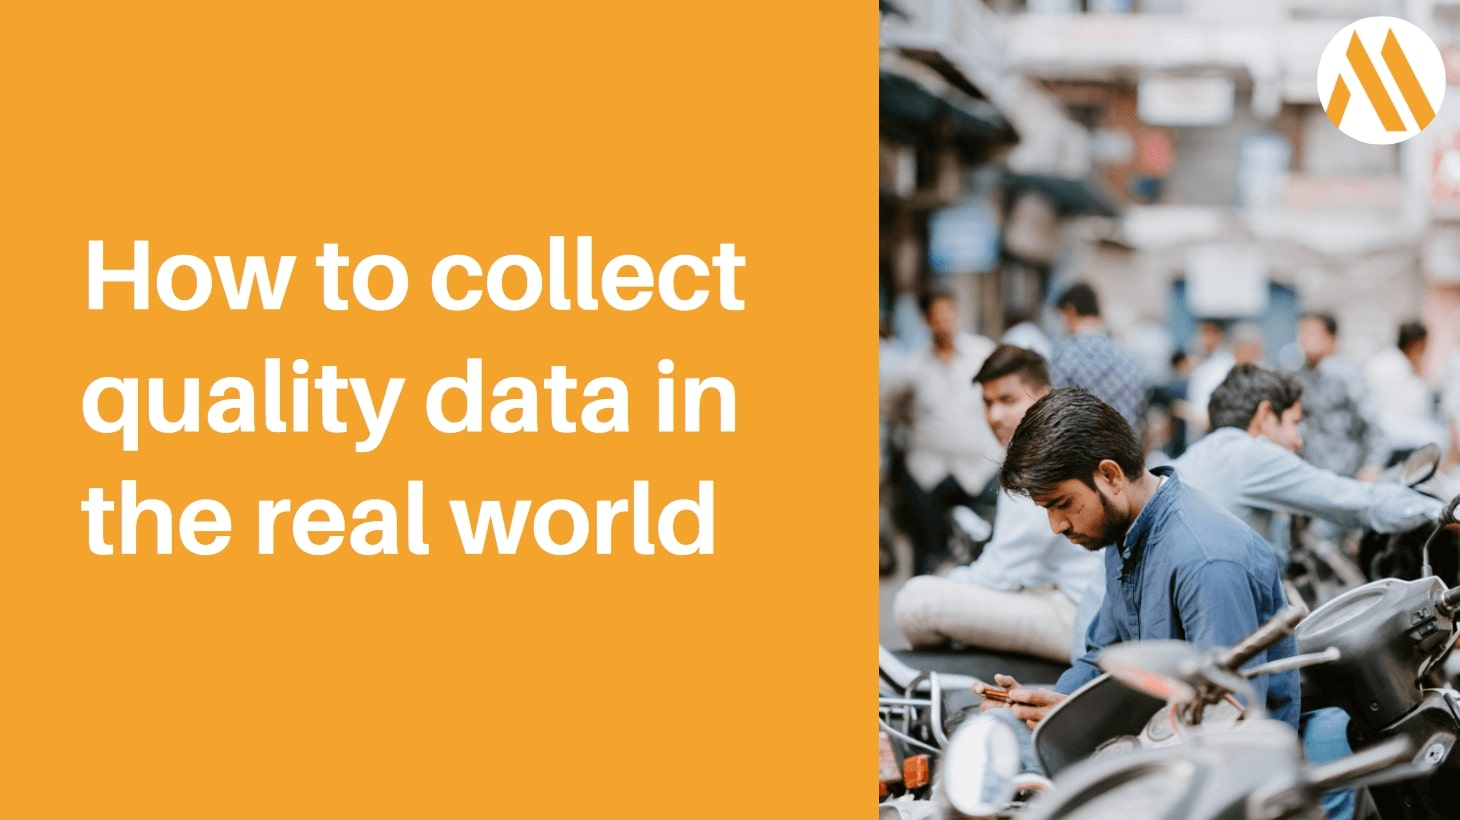 How to collect quality data in the real world: Methodology